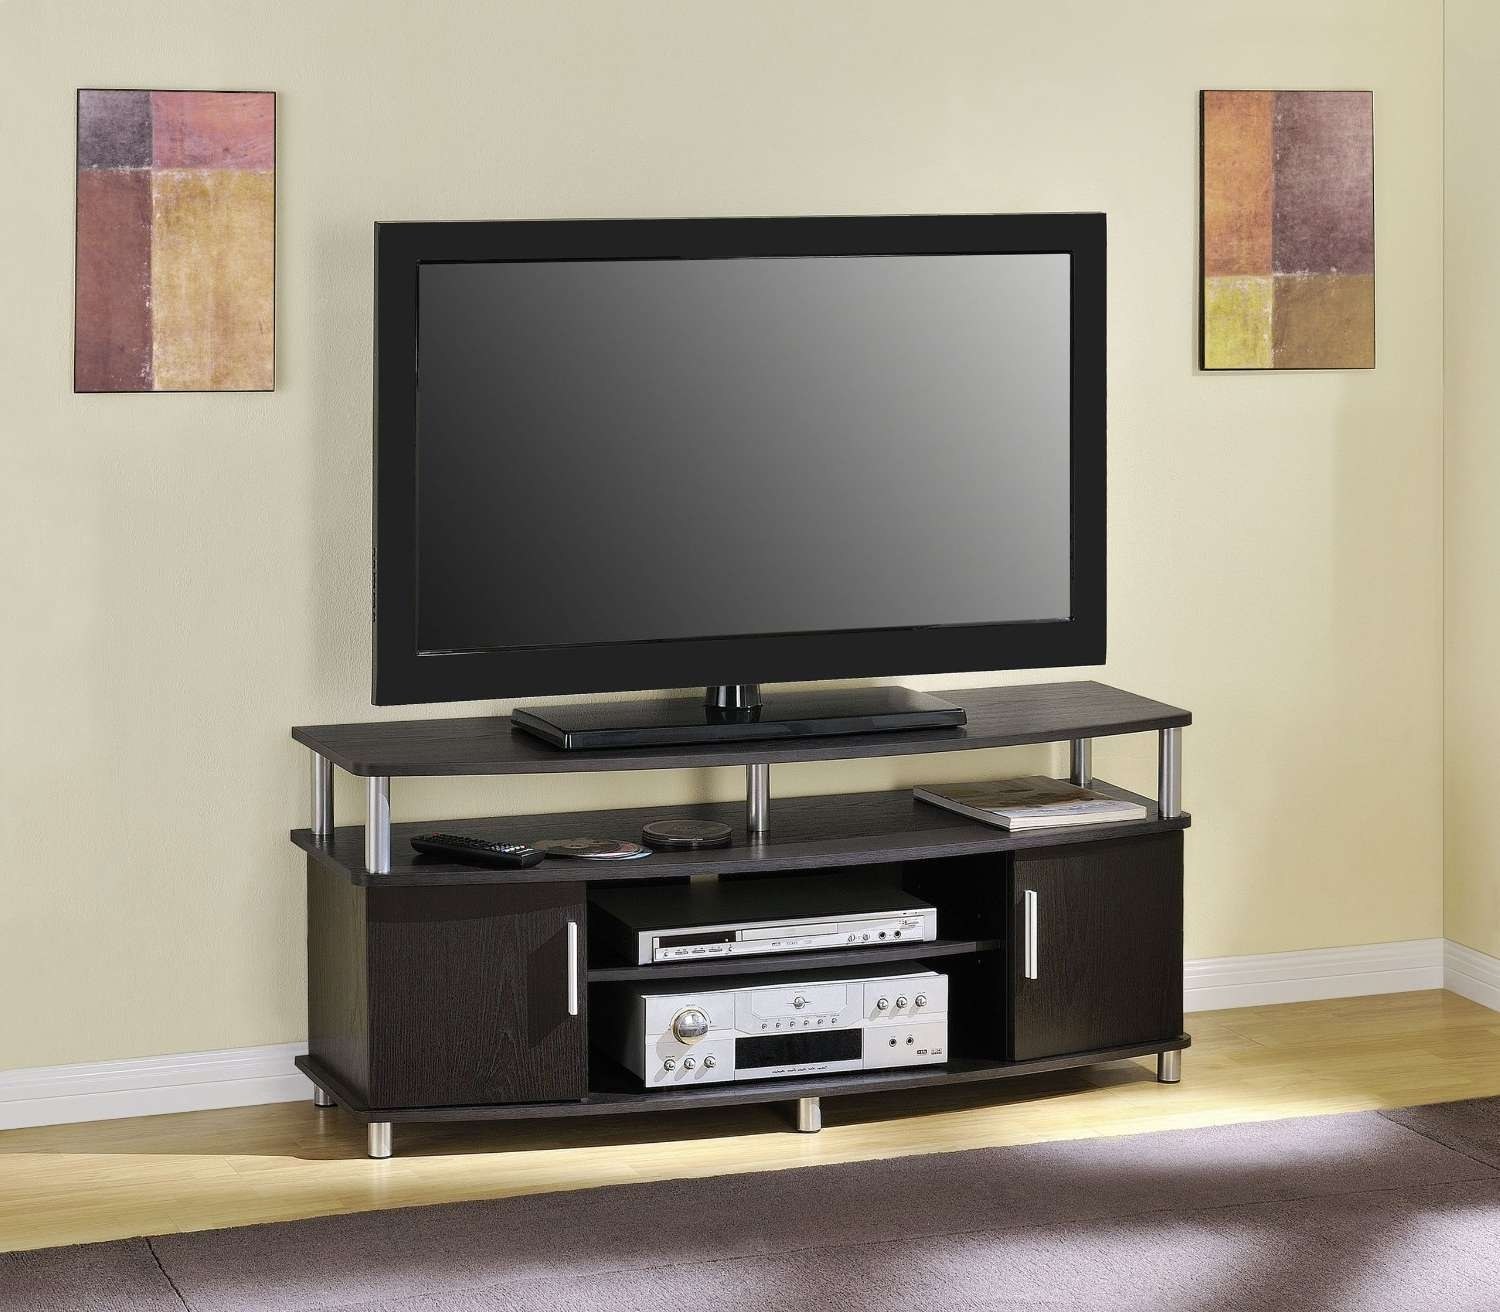 Magnificent Sony Flat Screen Hdtv Also Stand Flat Screen Tv With Regard To Wide Screen Tv Stands (View 3 of 15)